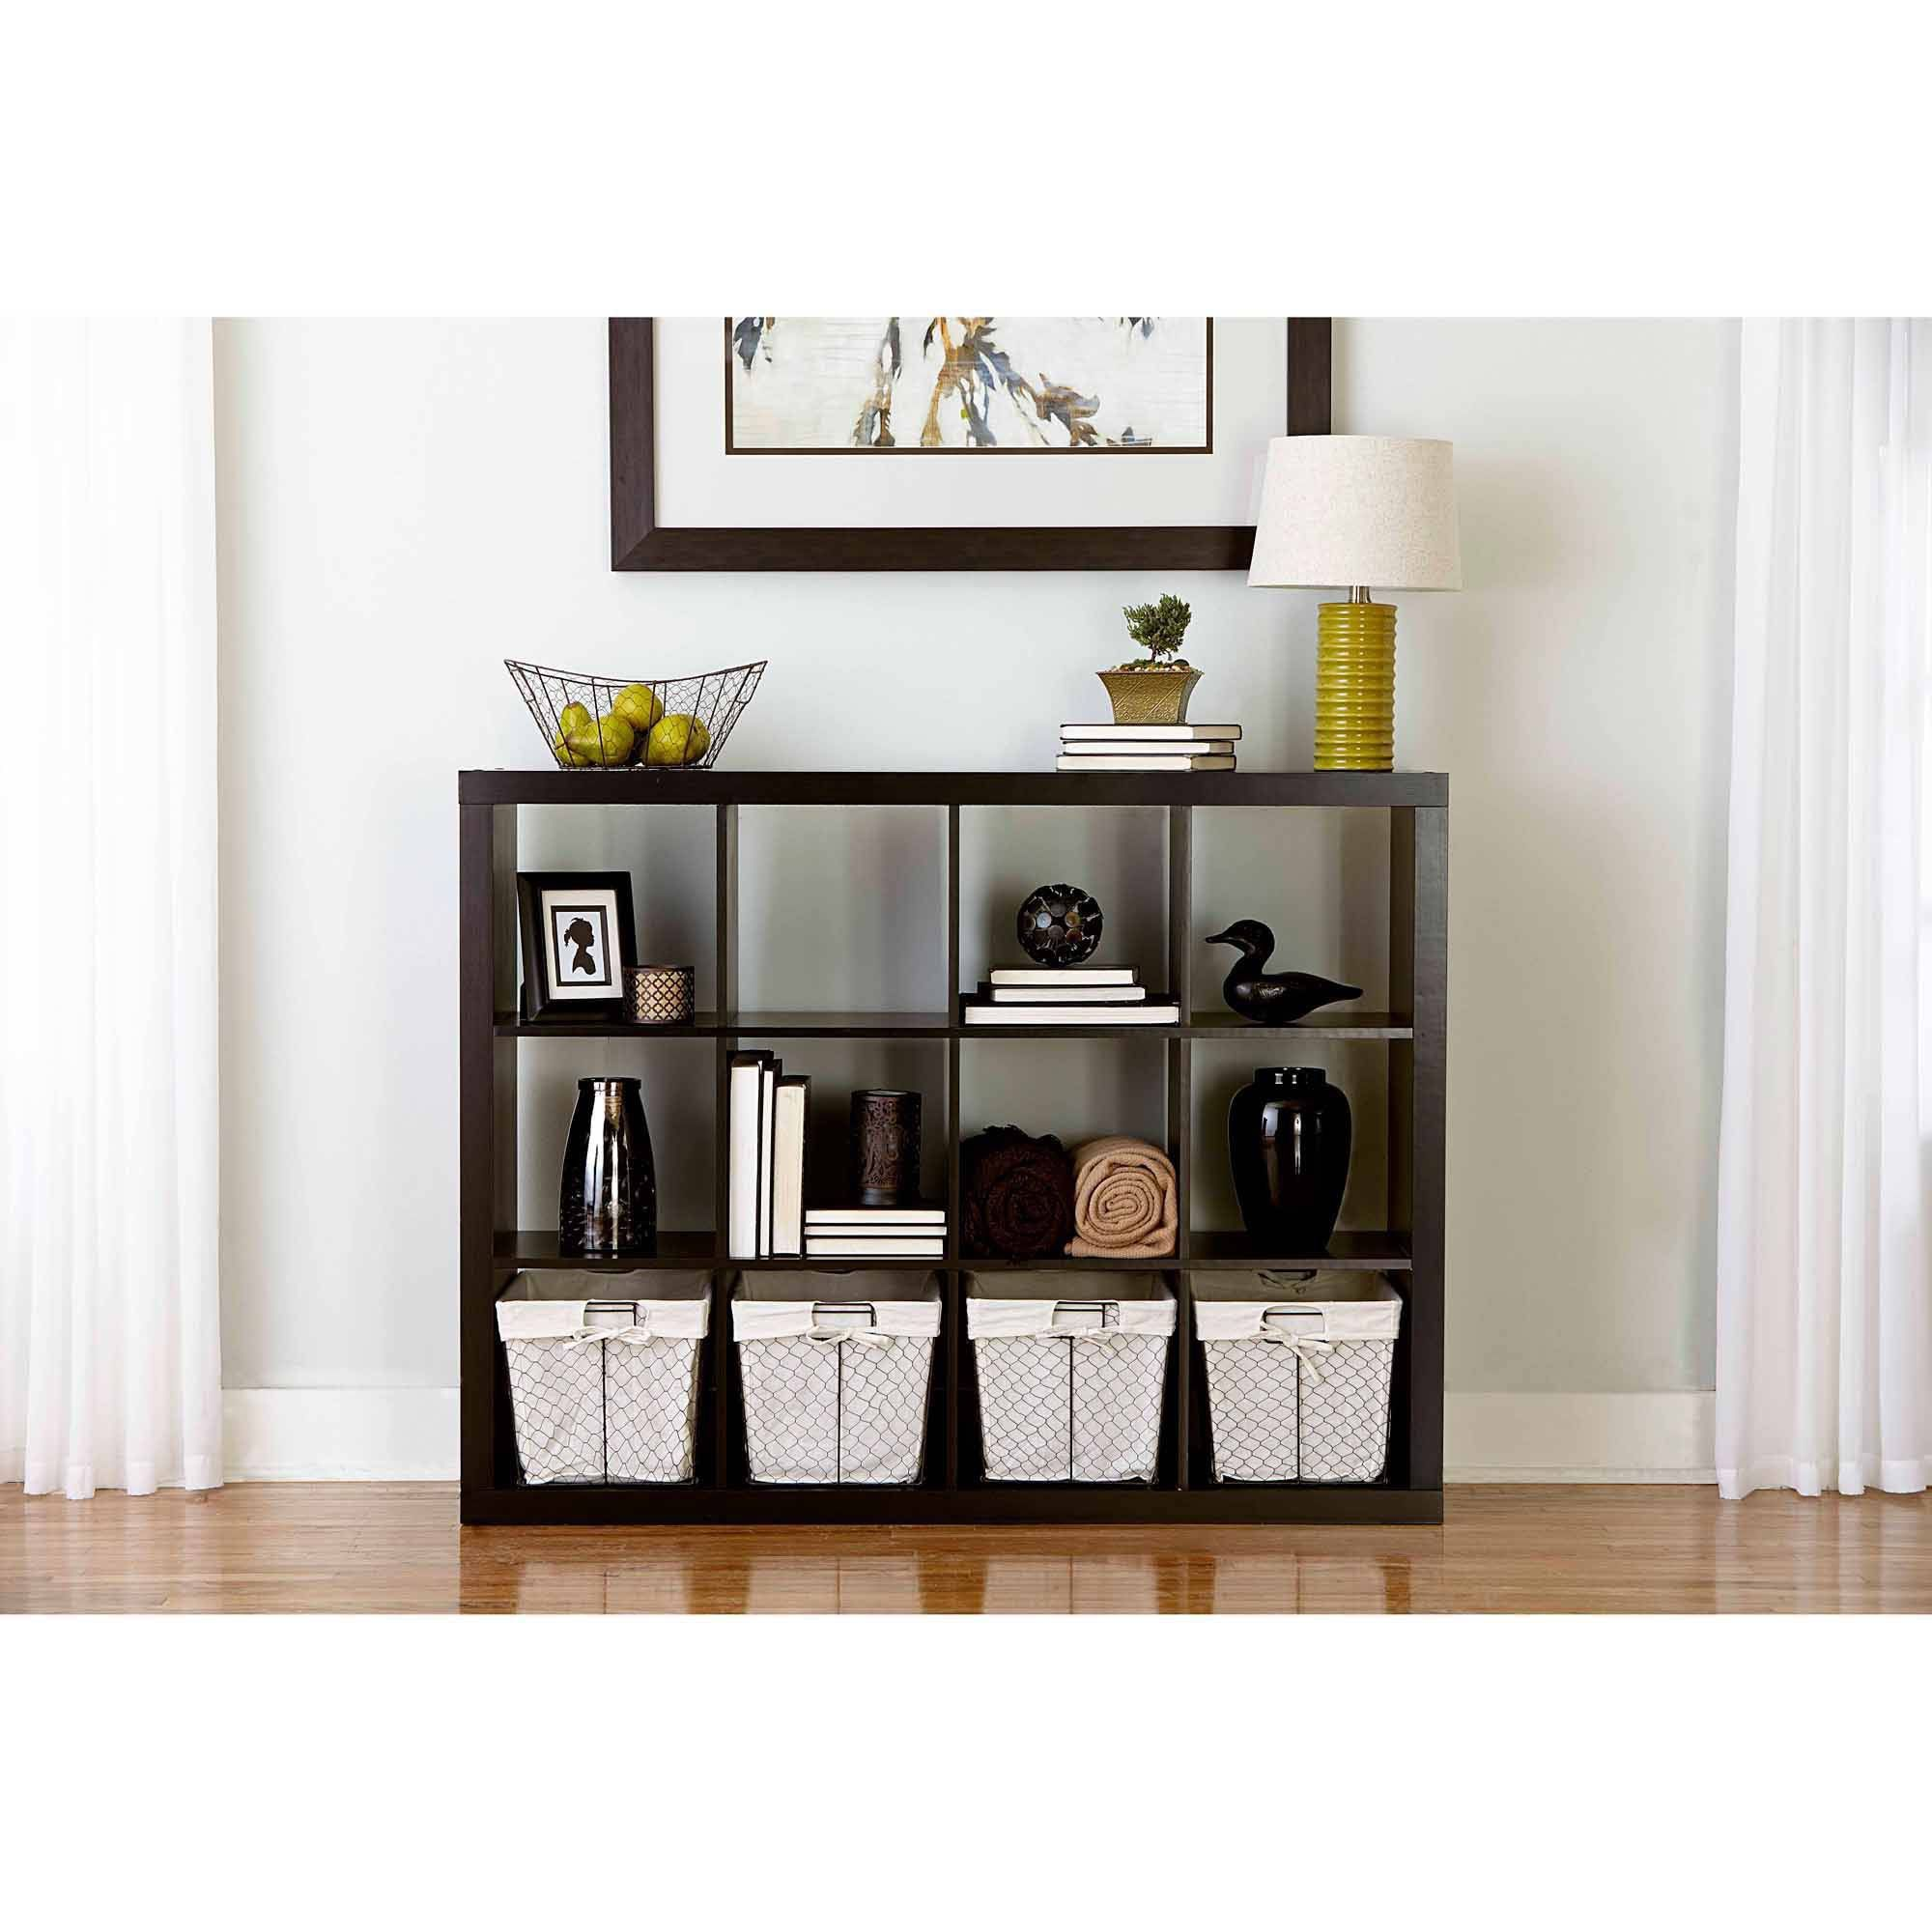 Better Homes And Gardens 4 Cube Organizer Black